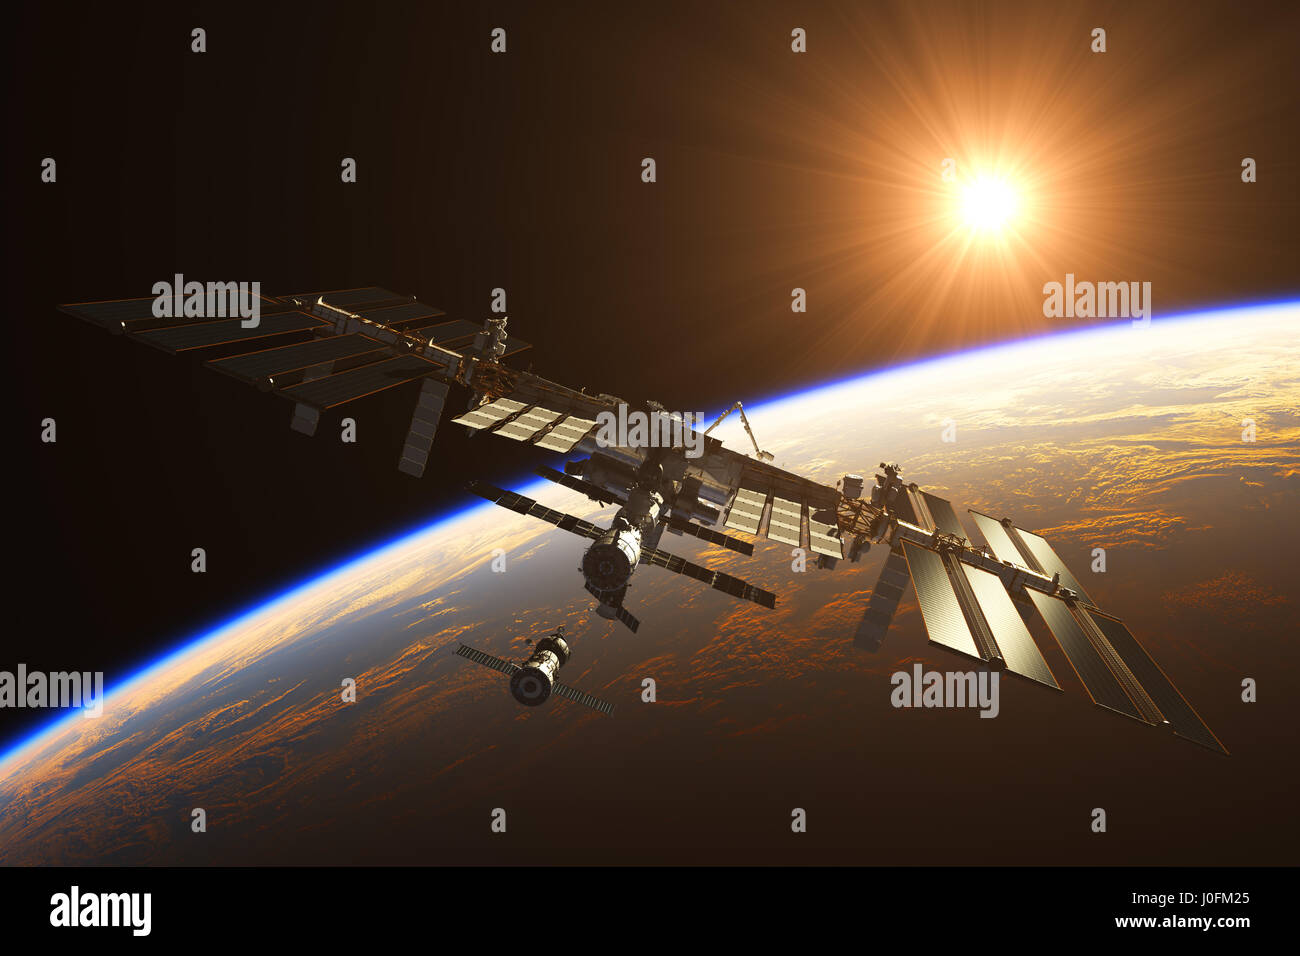 International Space Station On The Background Of Rising Sun. 3D Illustration. - Stock Image